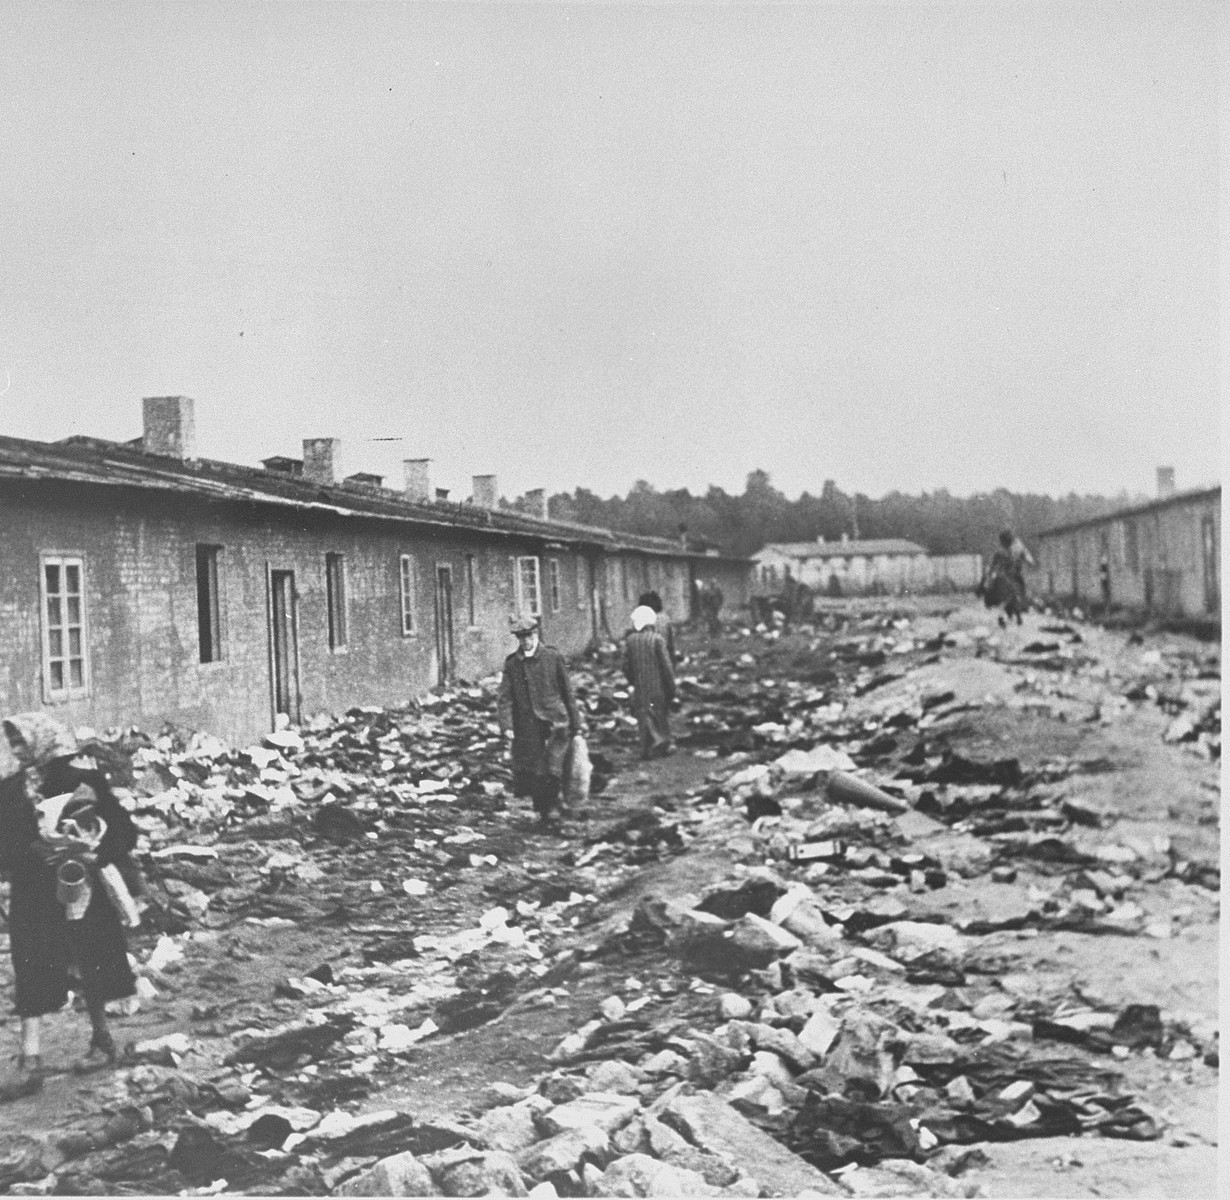 Survivors walk on refuse filled streets in Bergen-Belsen concentration camp after its liberation by the British Army.